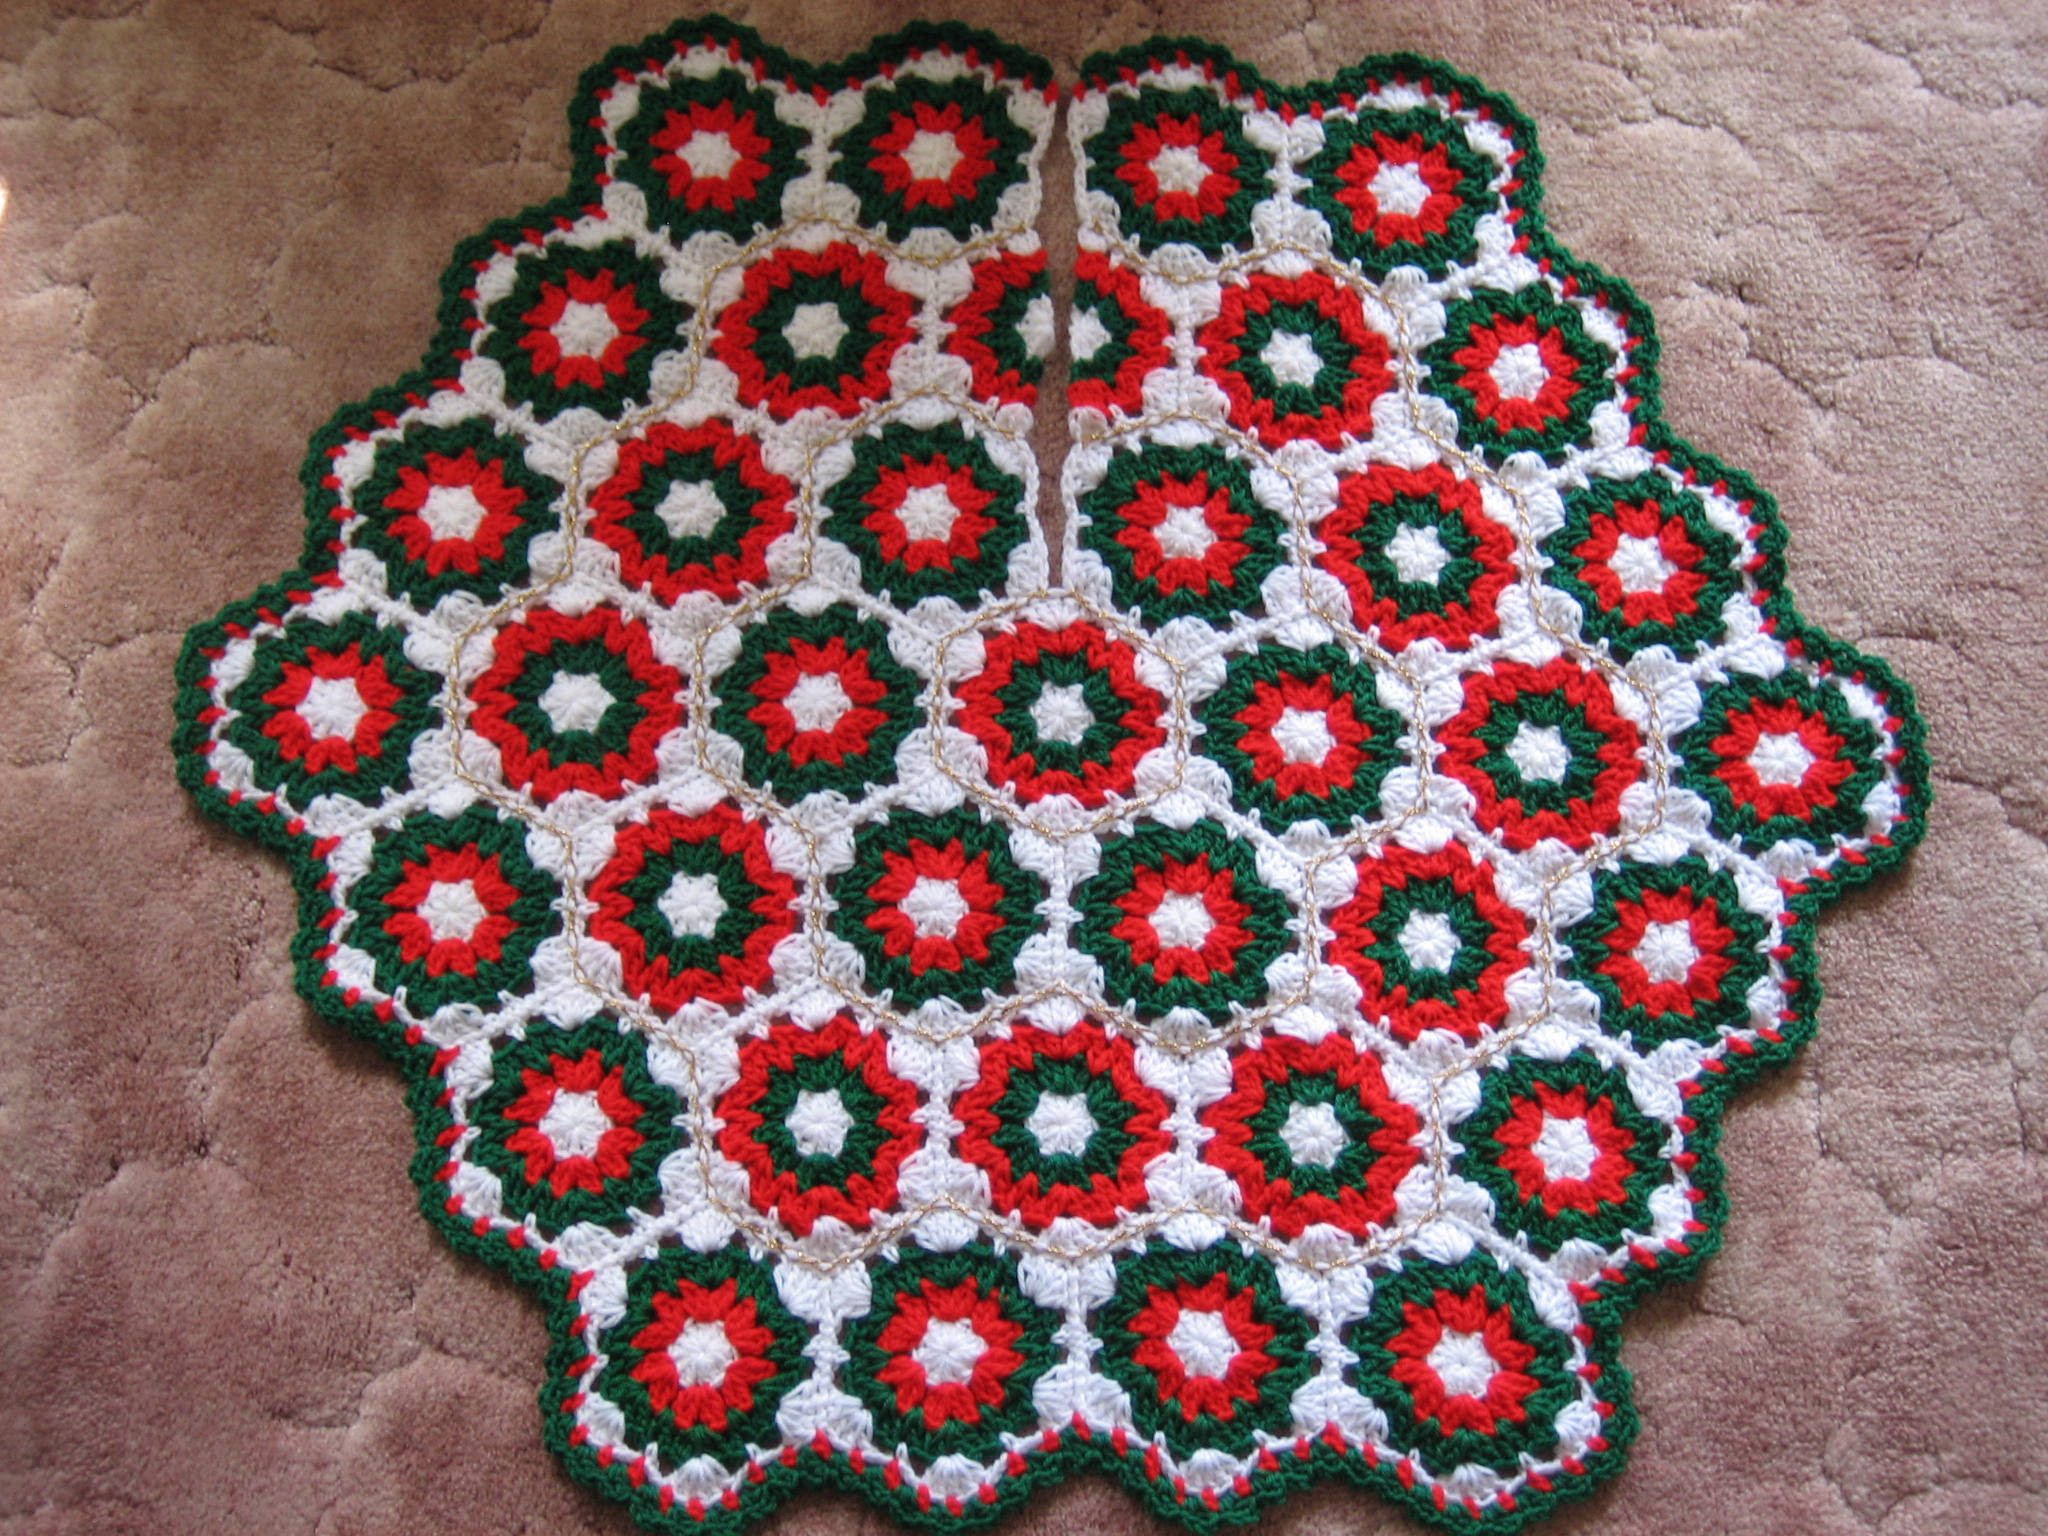 Tree Skirt Pattern Best Of Crochet Christmas Tree Skirt Of Tree Skirt Pattern Elegant Christmas Goose Tree Skirt & Card Holder